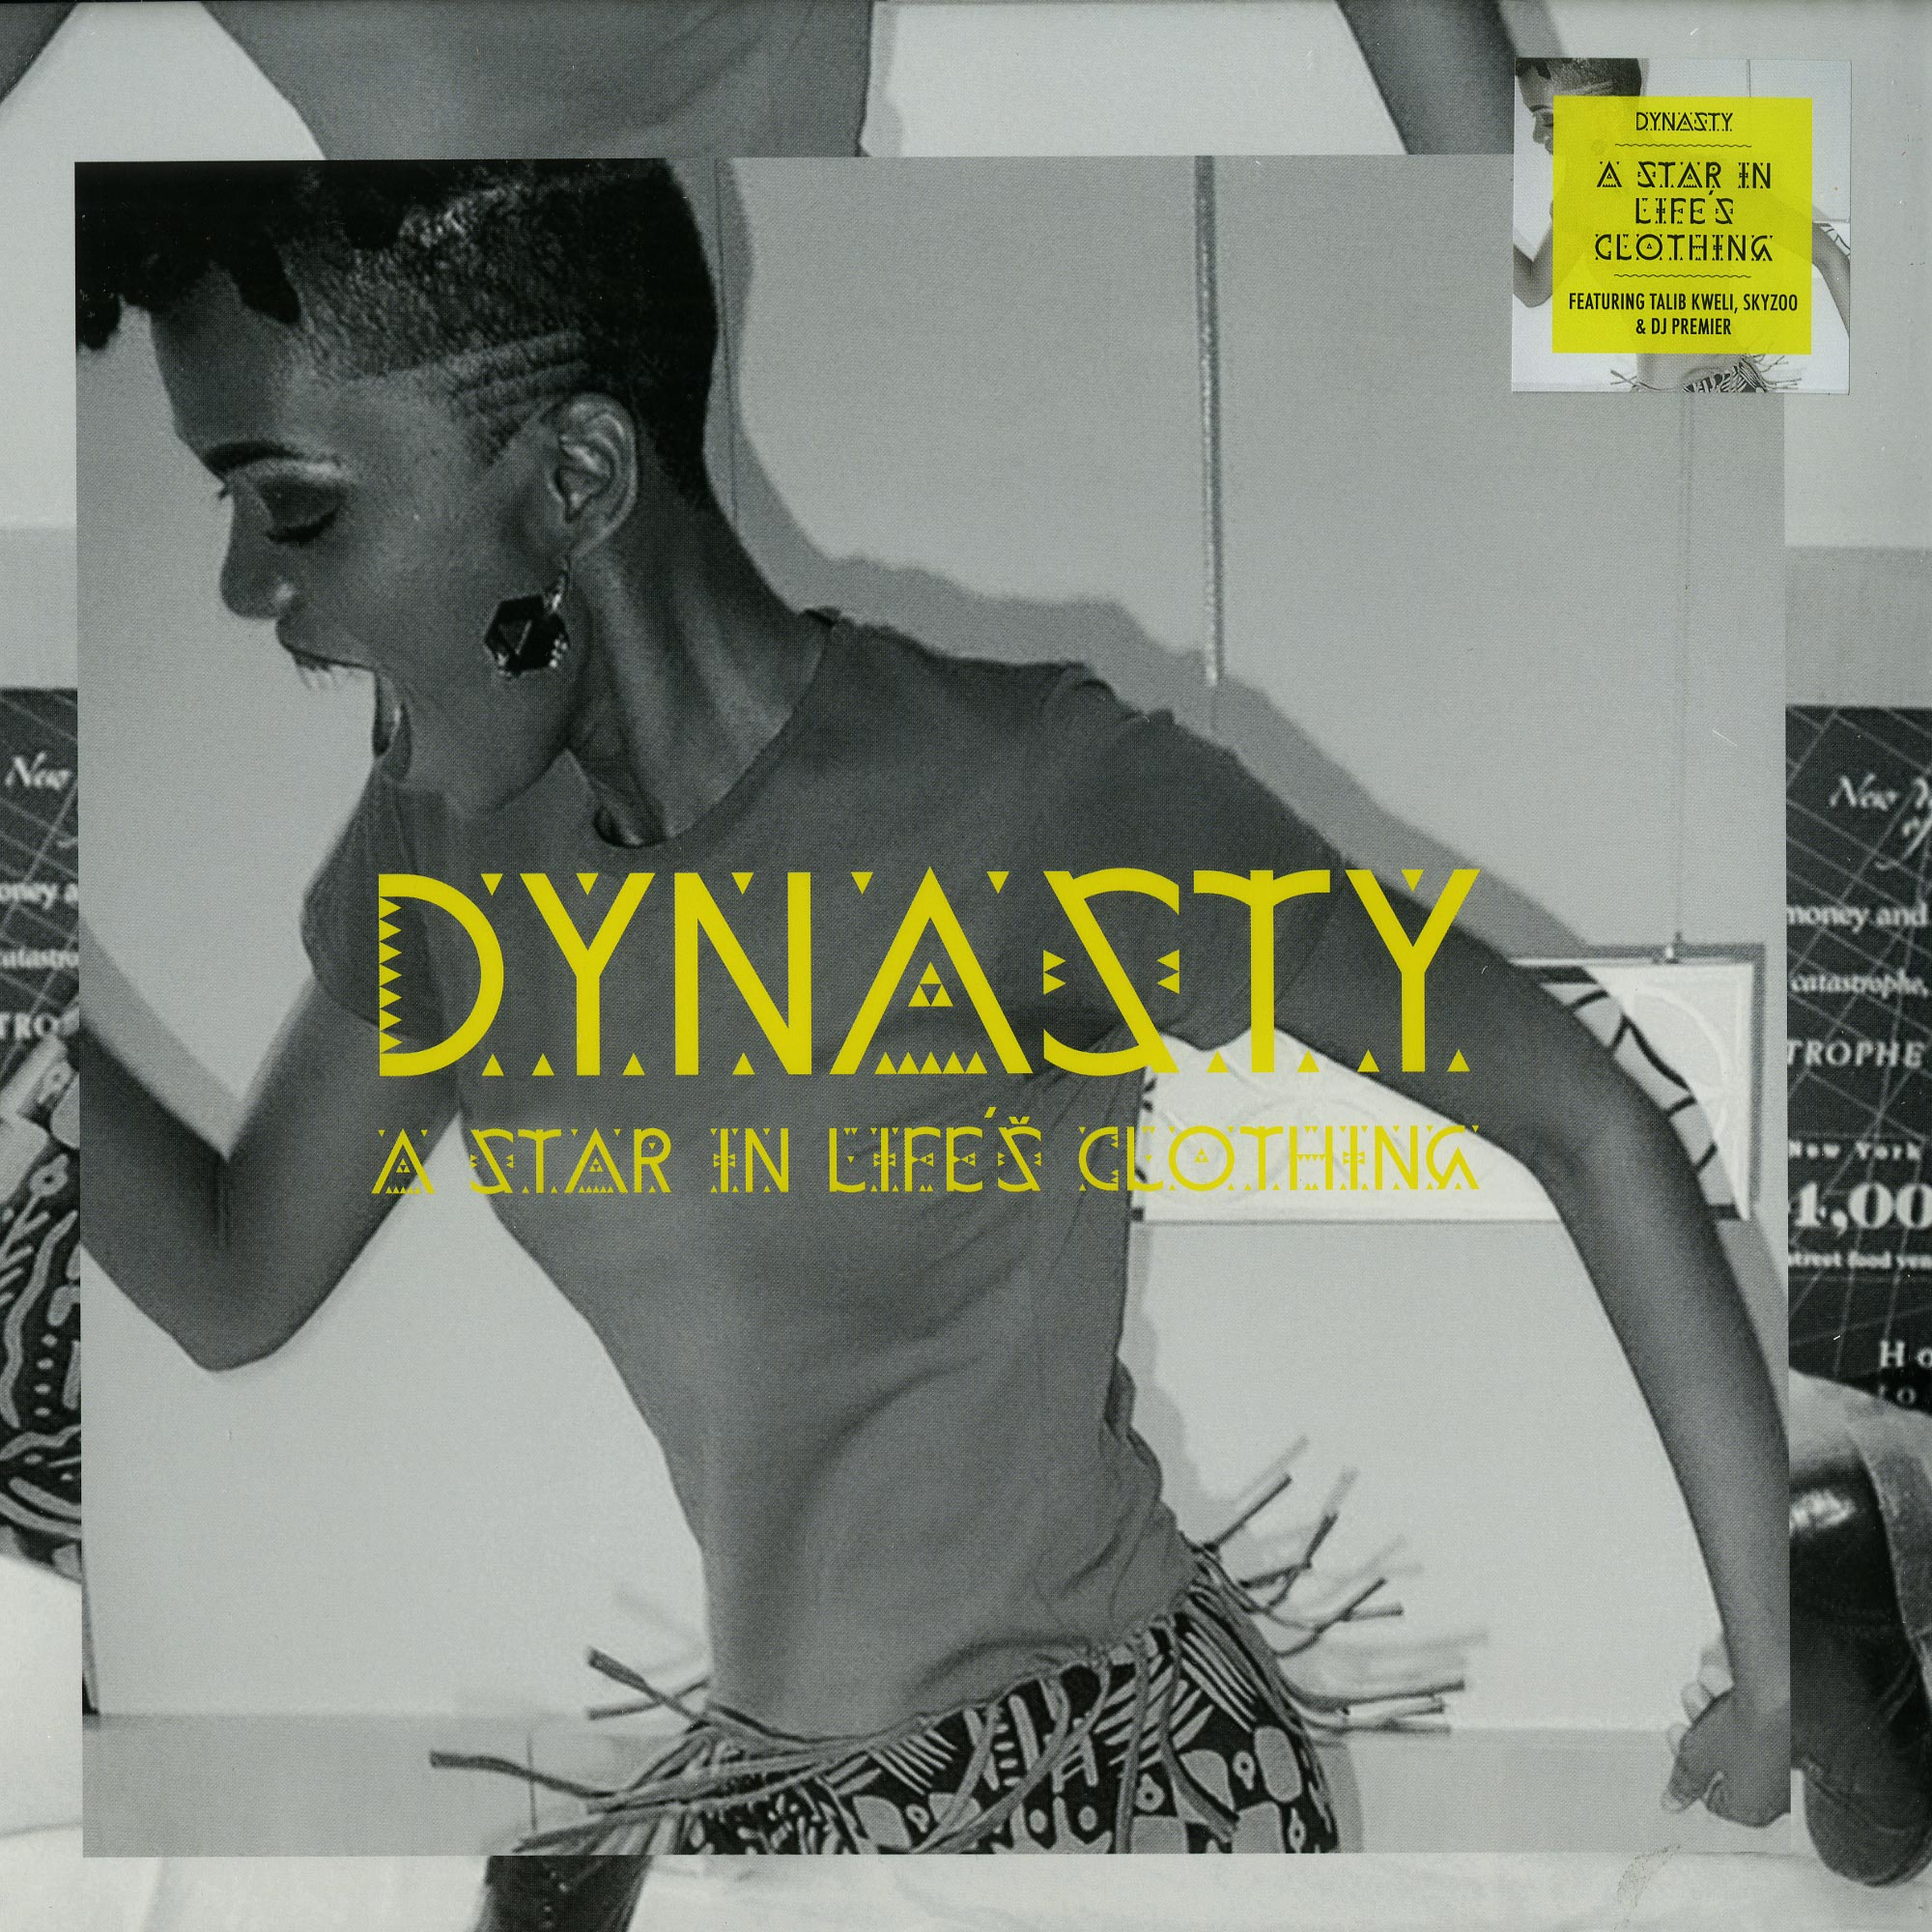 Dynasty - A STAR IN LIFES CLOTHING